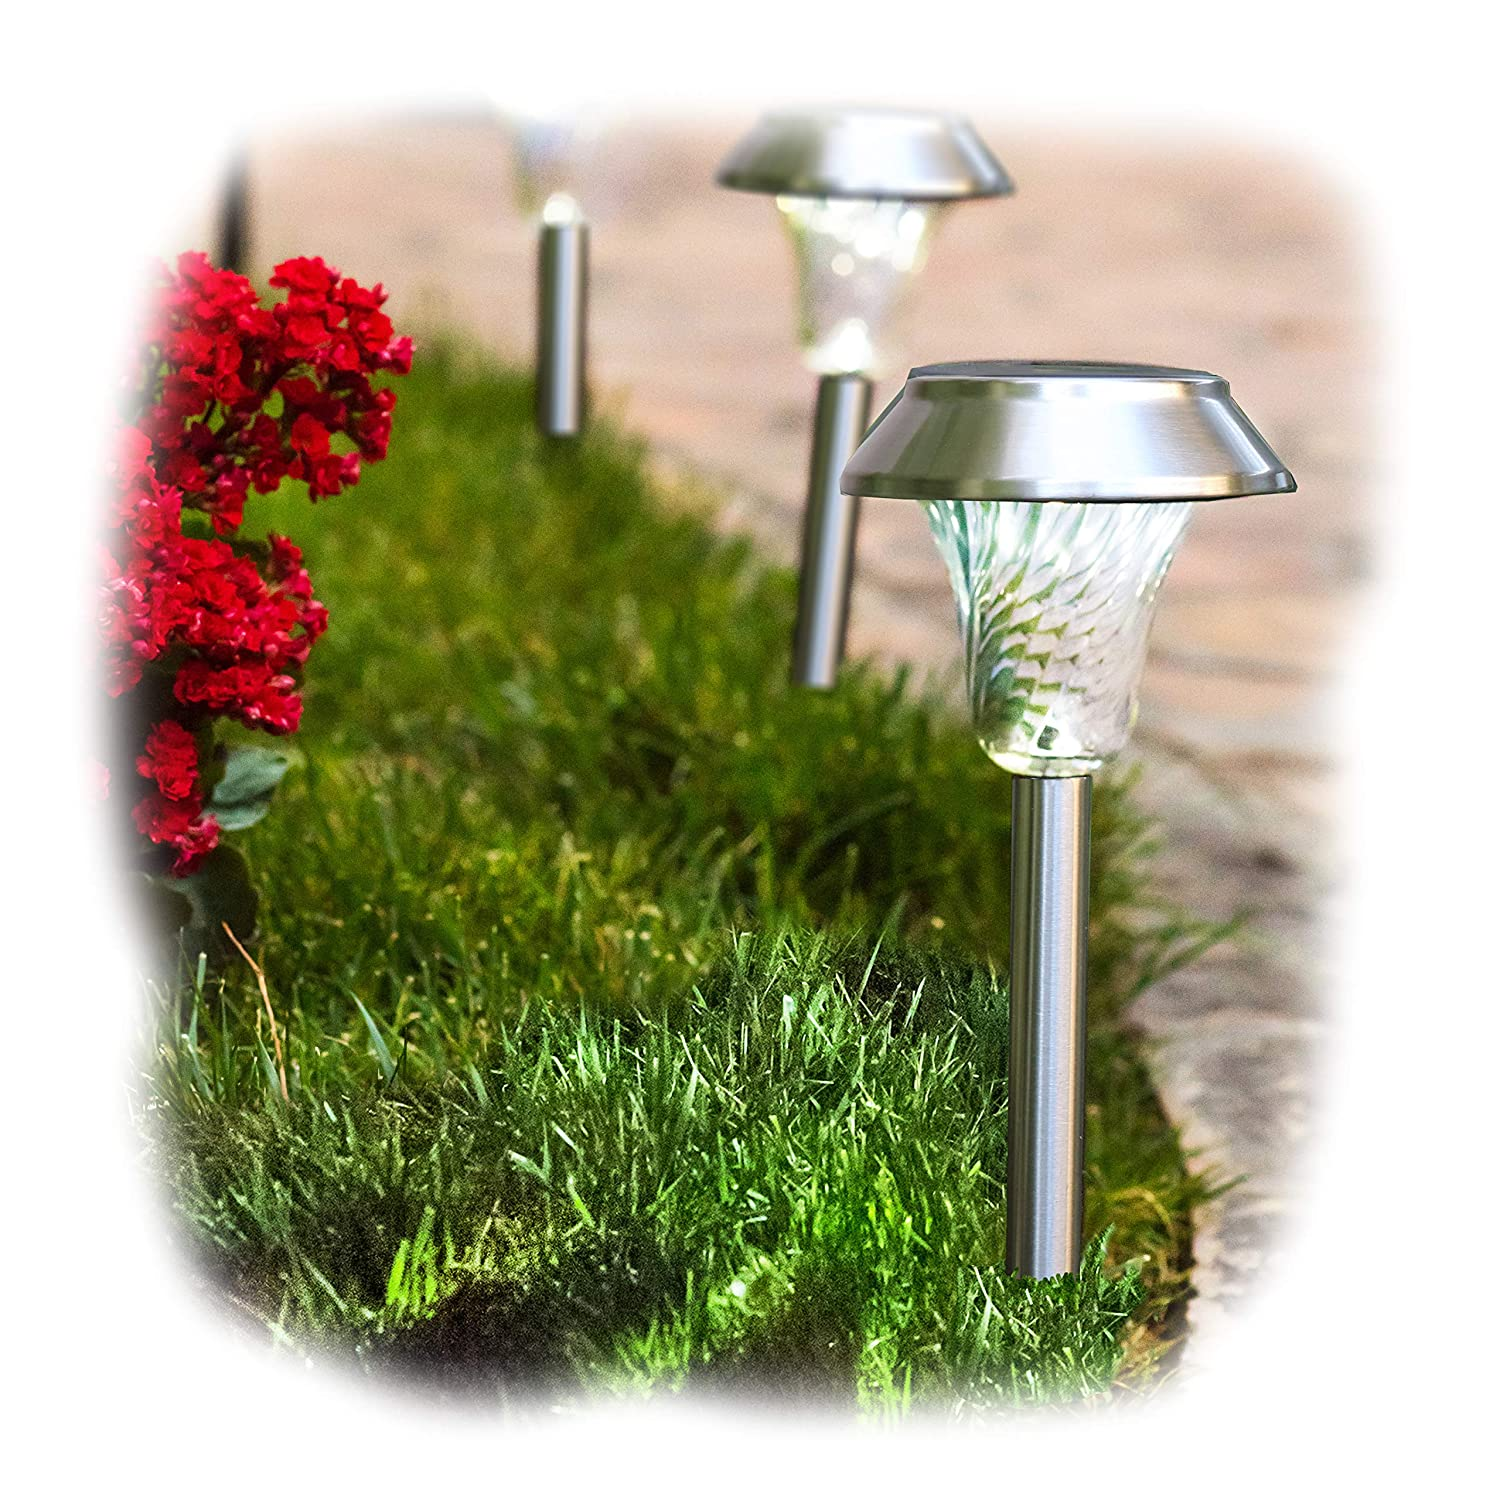 Enchanted Spaces Silver Solar Path Light, Set of 6, with Glass Lens, Metal Ground Stake, and Extra-Bright LED